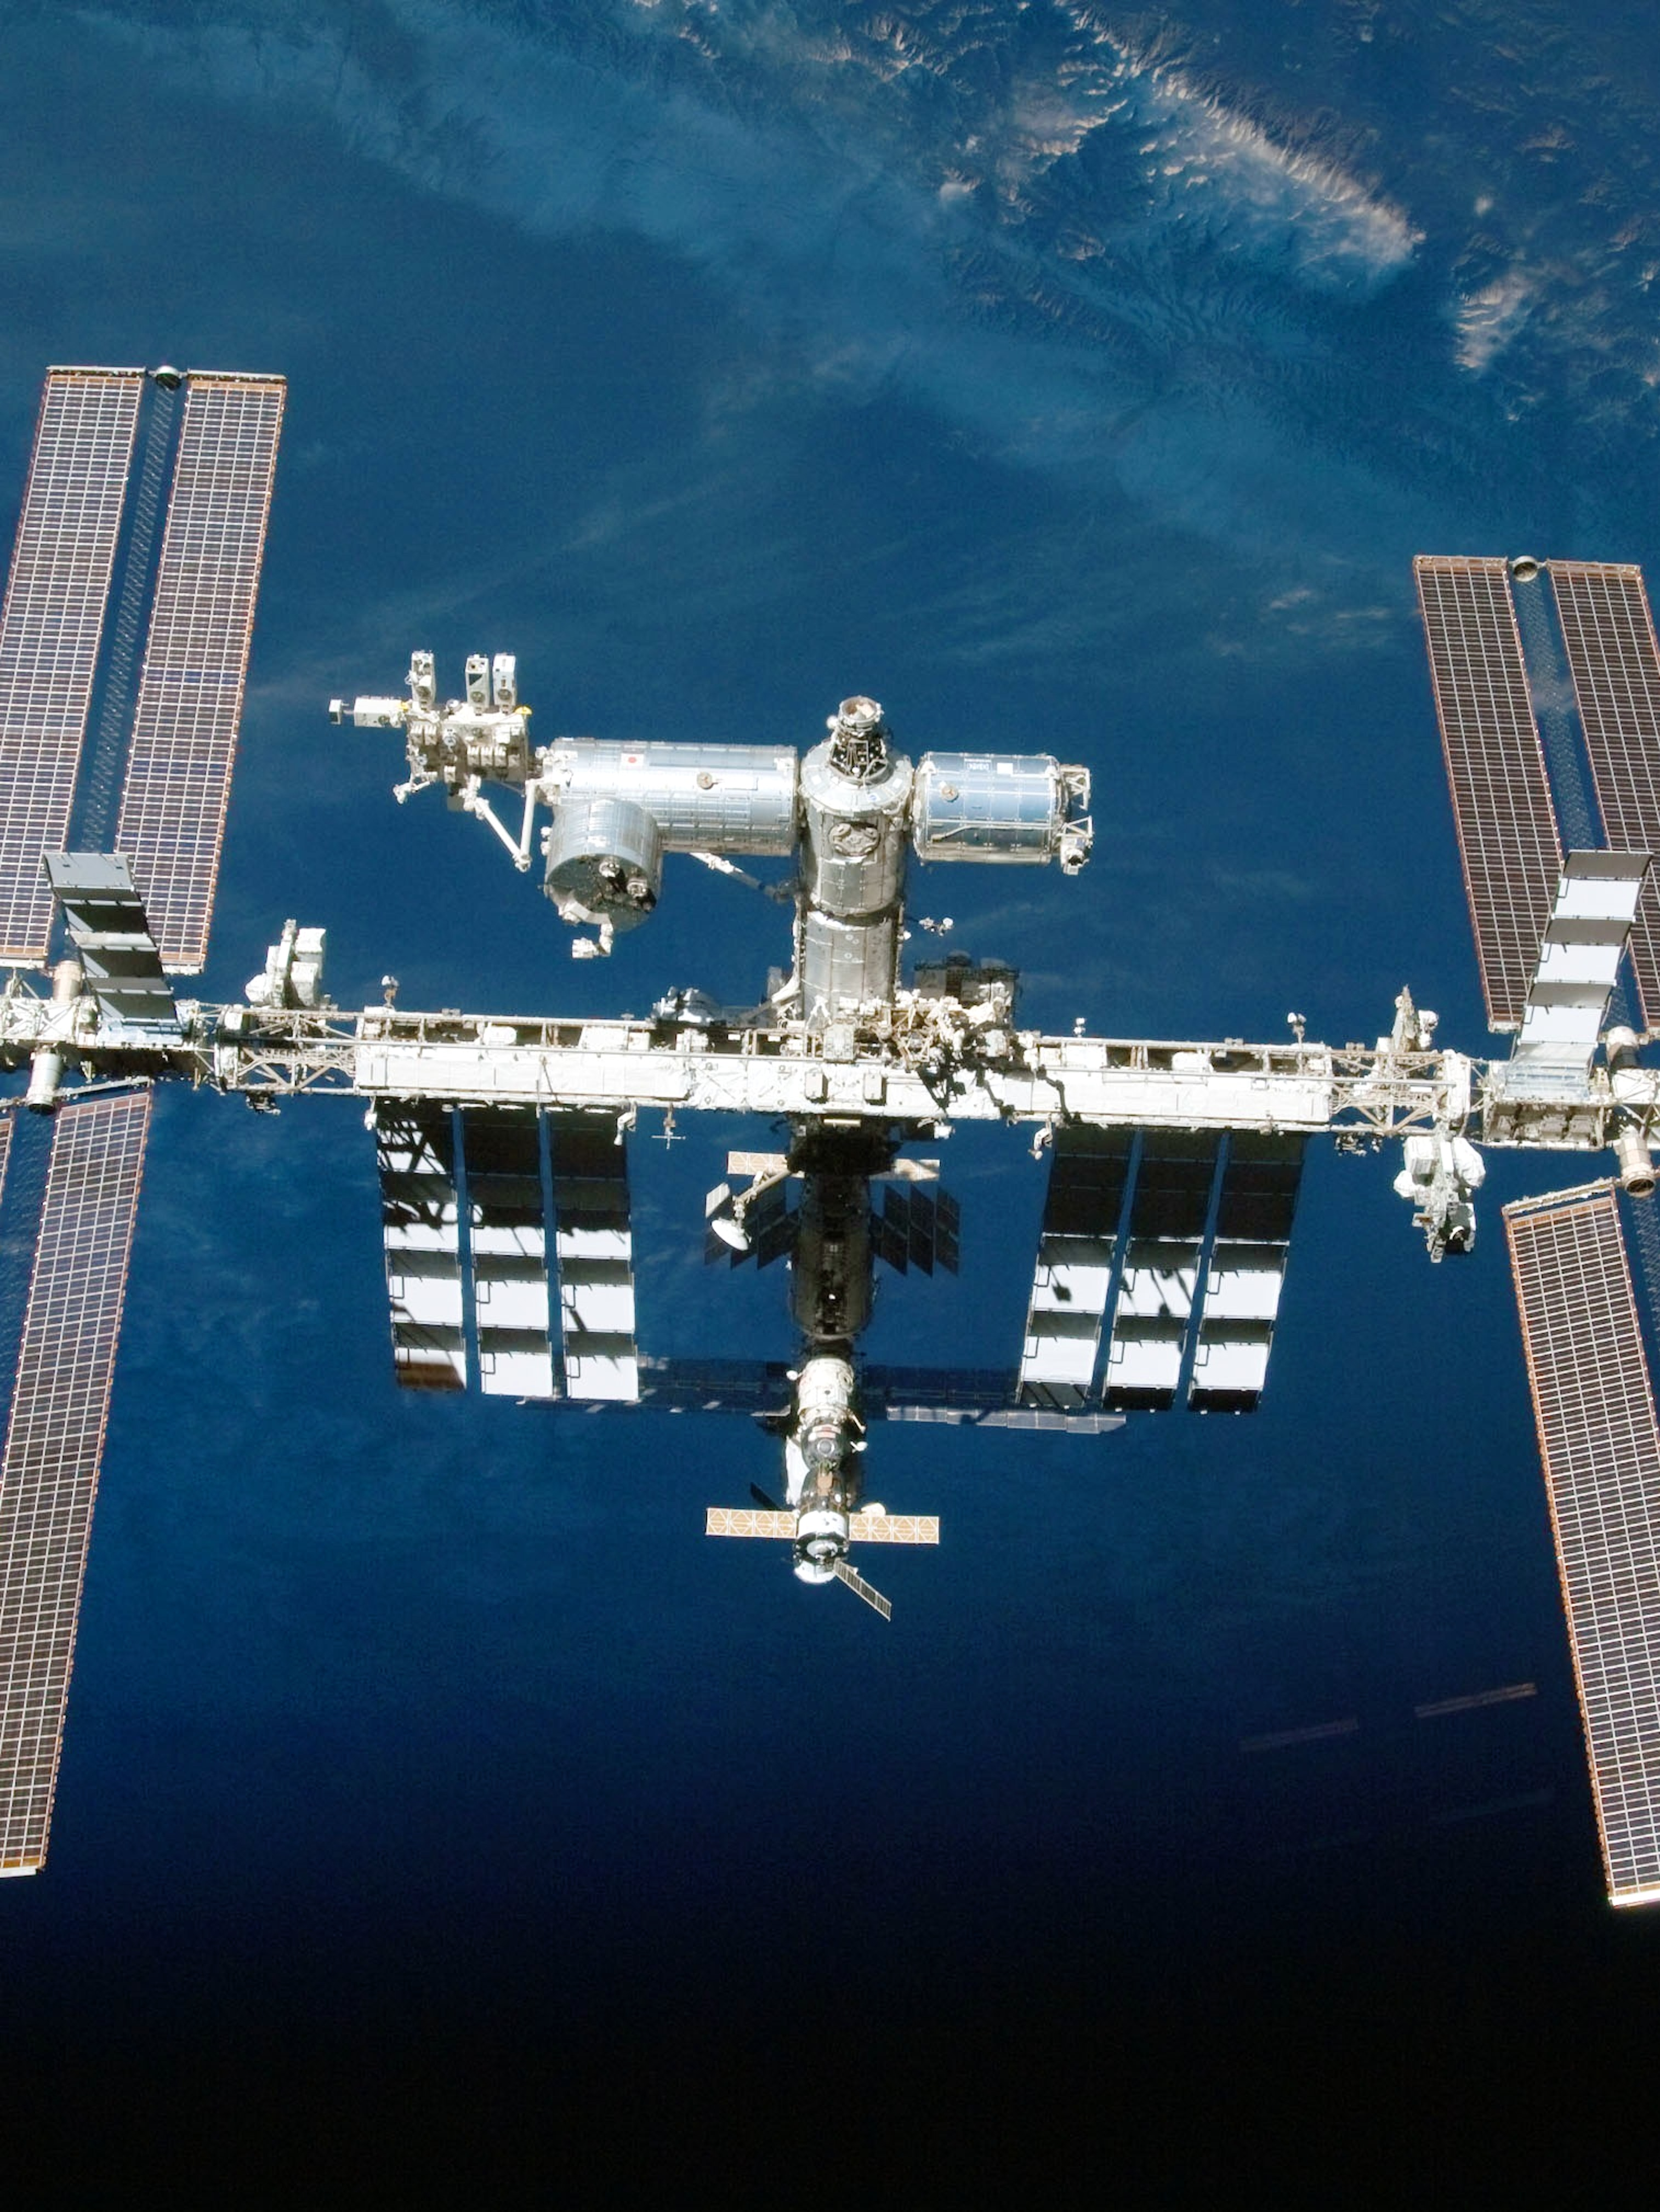 How to Spot the International Space Station | Inverse